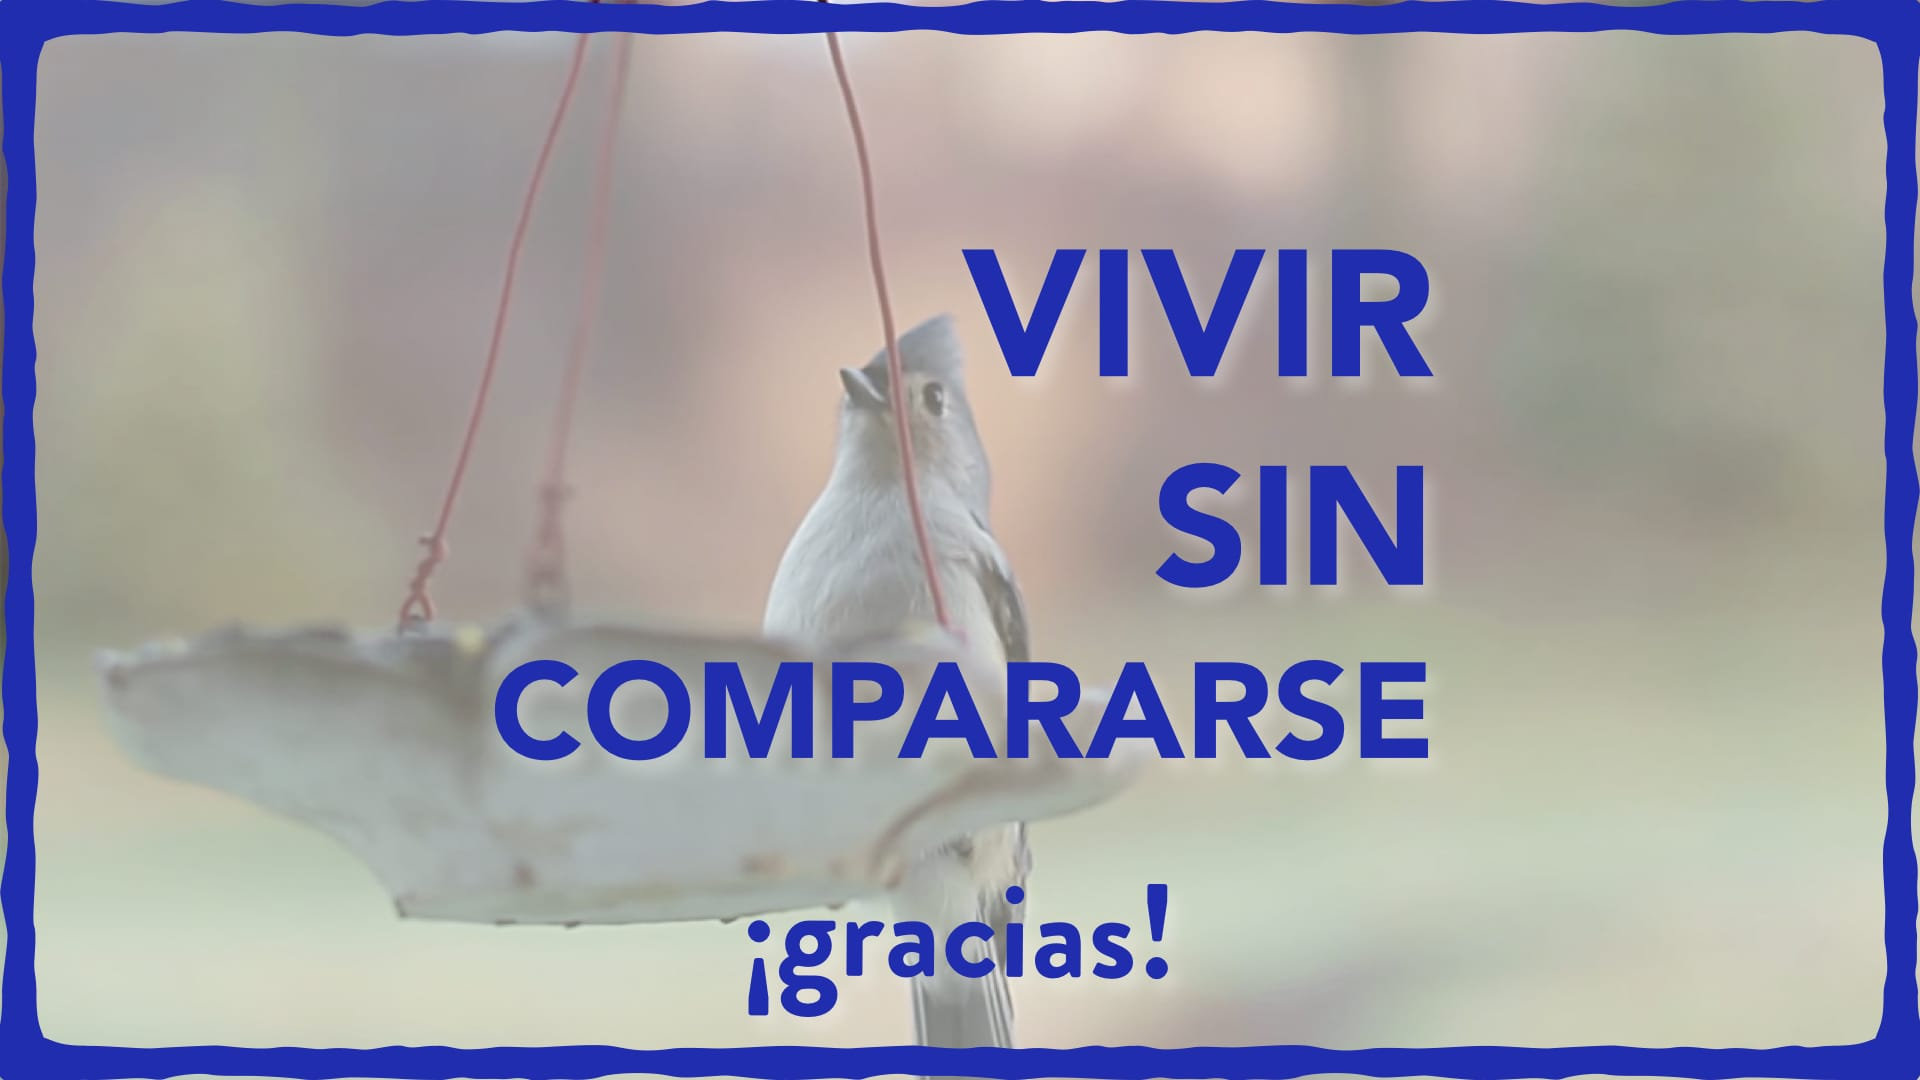 image from Vivir sin compararse